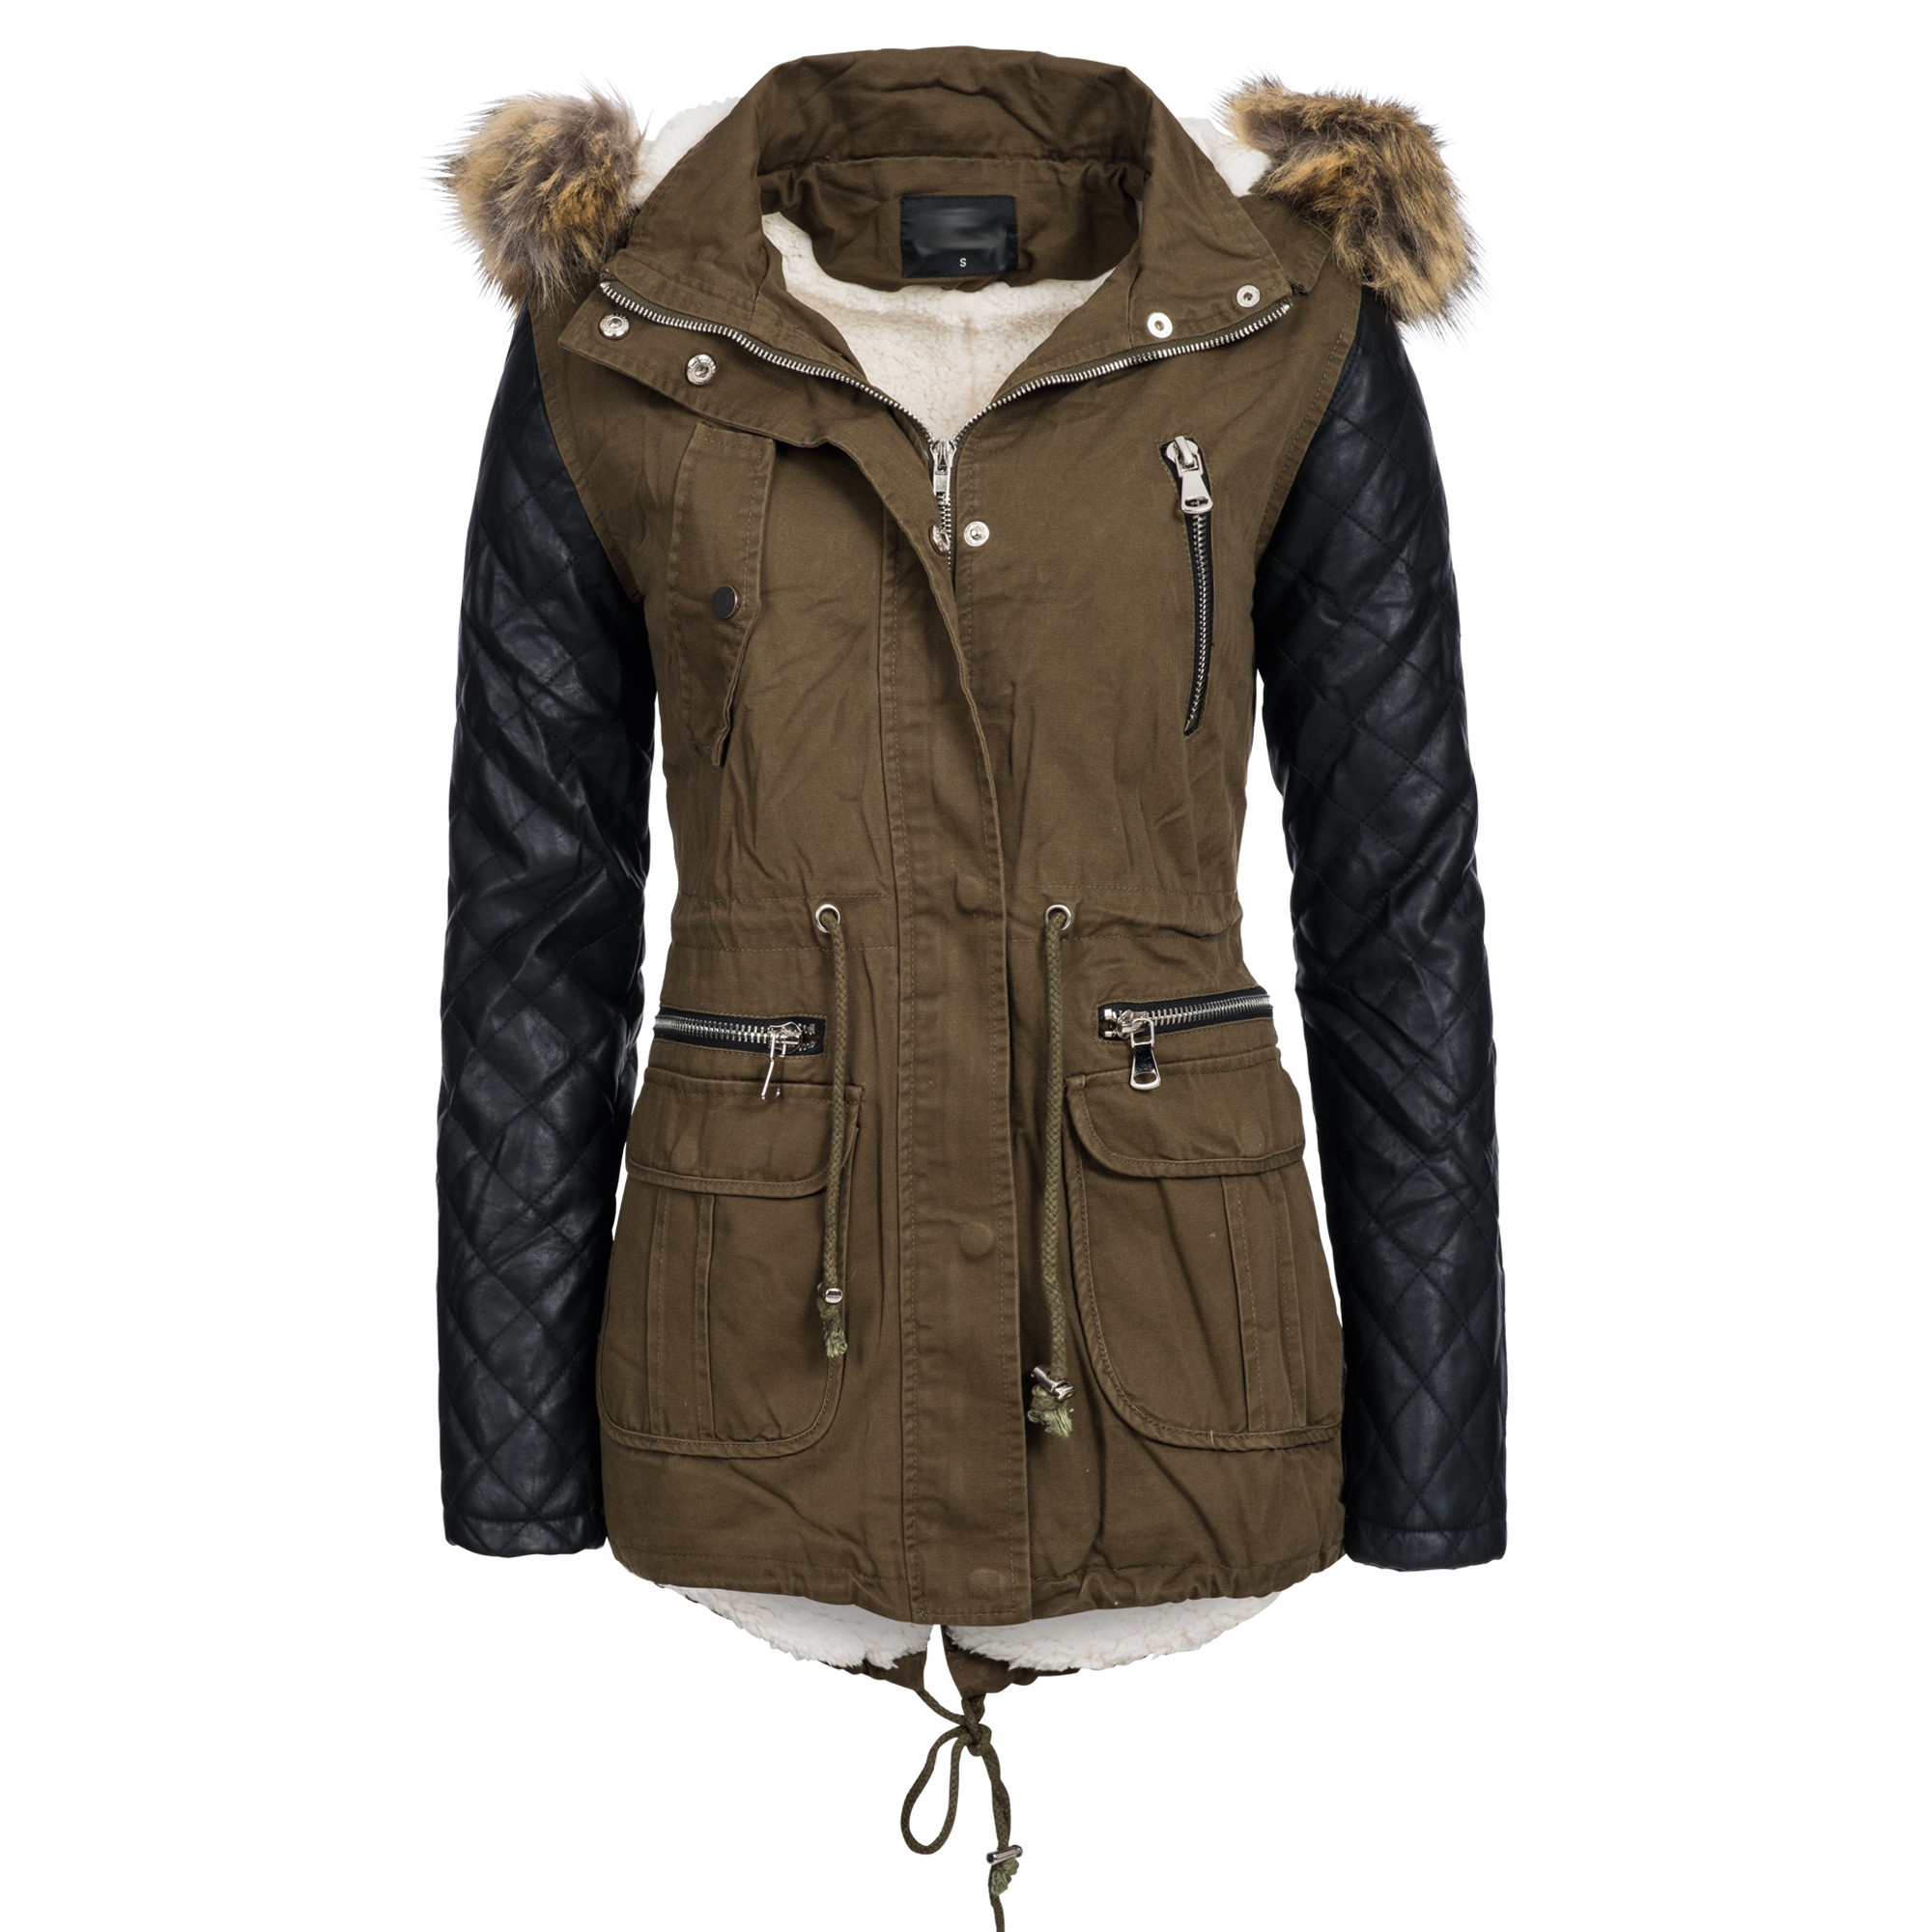 Citaten Winter Xl : Be fashion damen winter jacke parka mantel gefüttert